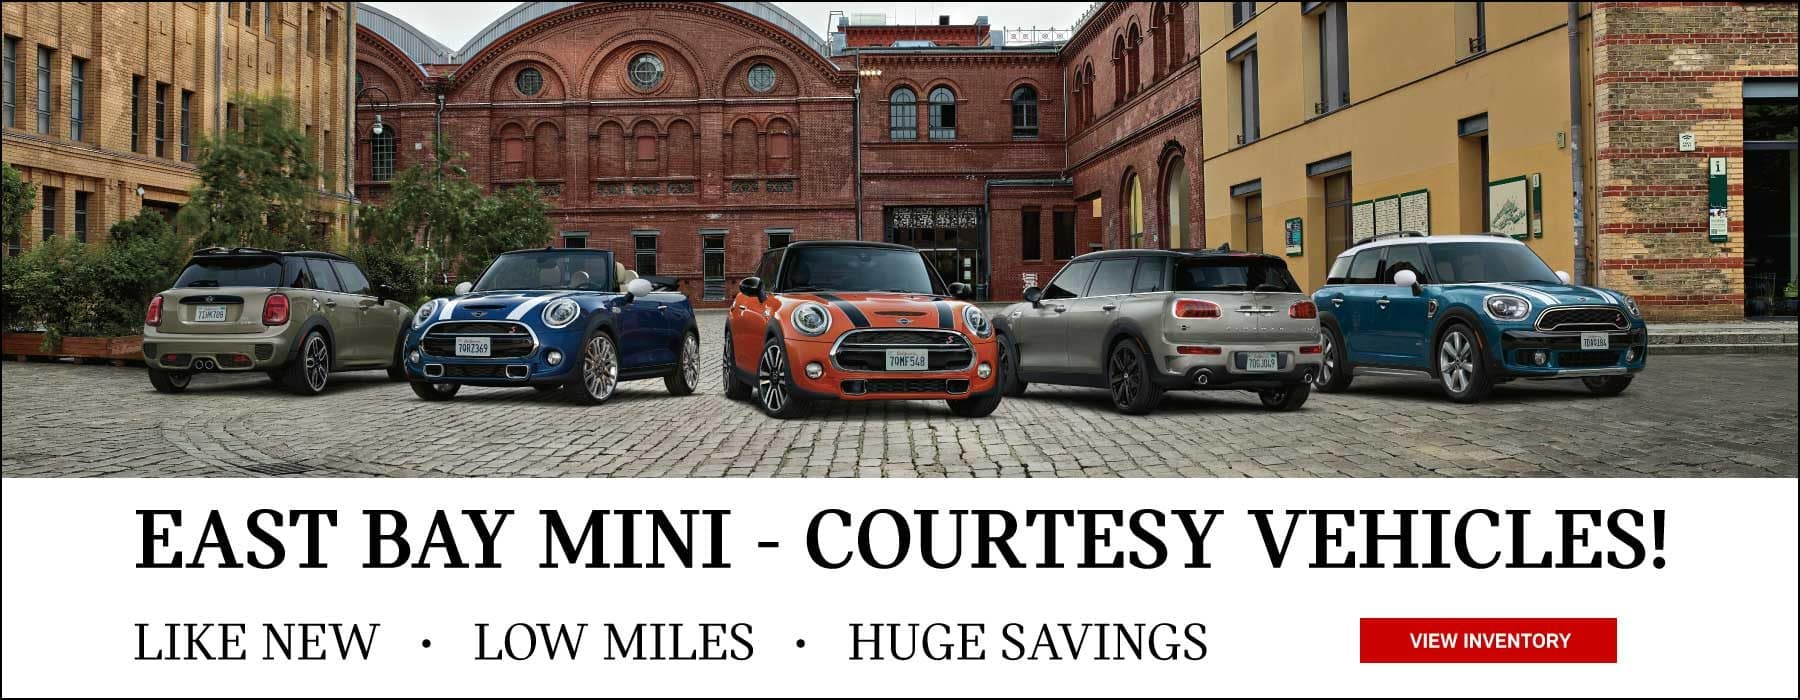 East Bay MINI - Courtesy Vehicles! Like new, low miles, huge savings. View Inventory button. Family of MINIs.